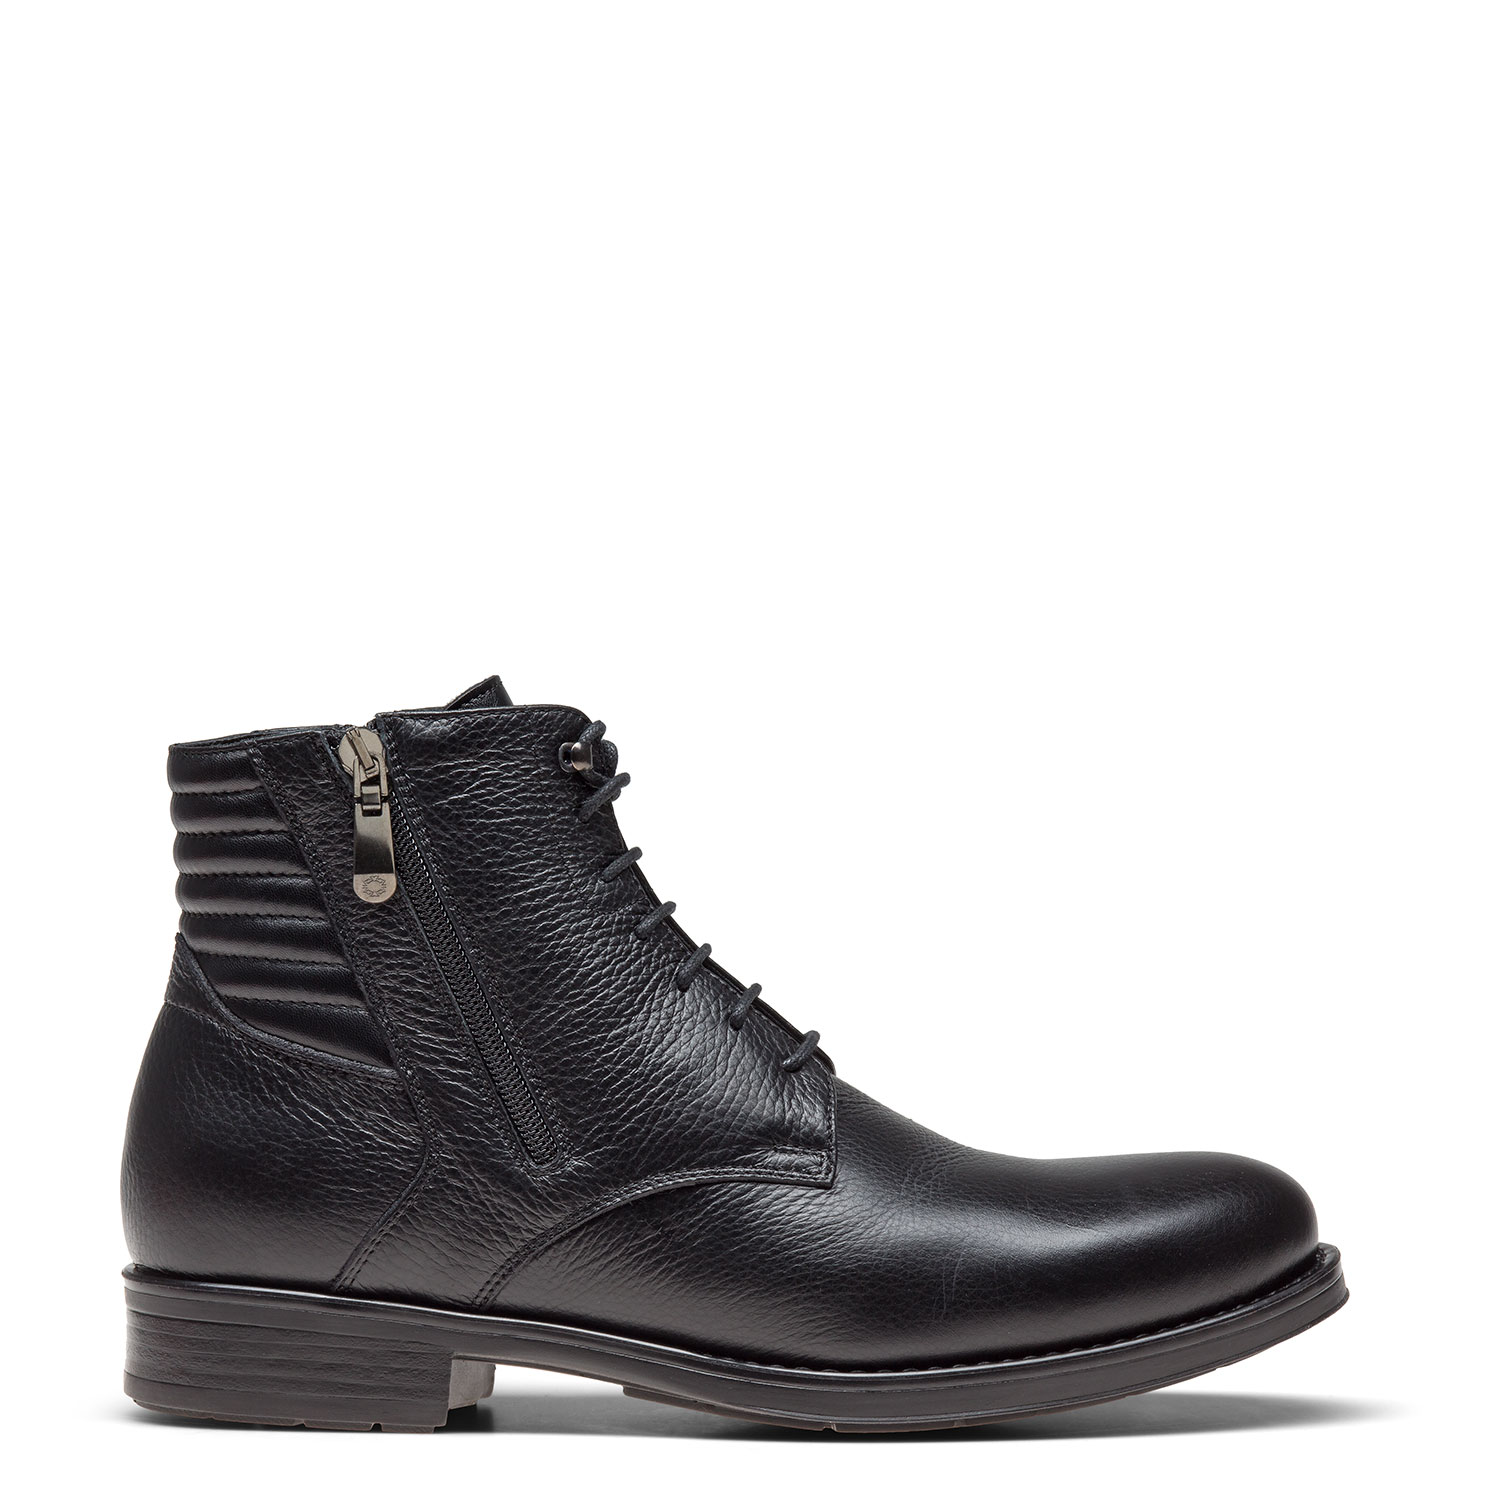 Men's fur-lined boots CARLO PAZOLINI GD-X9064-1